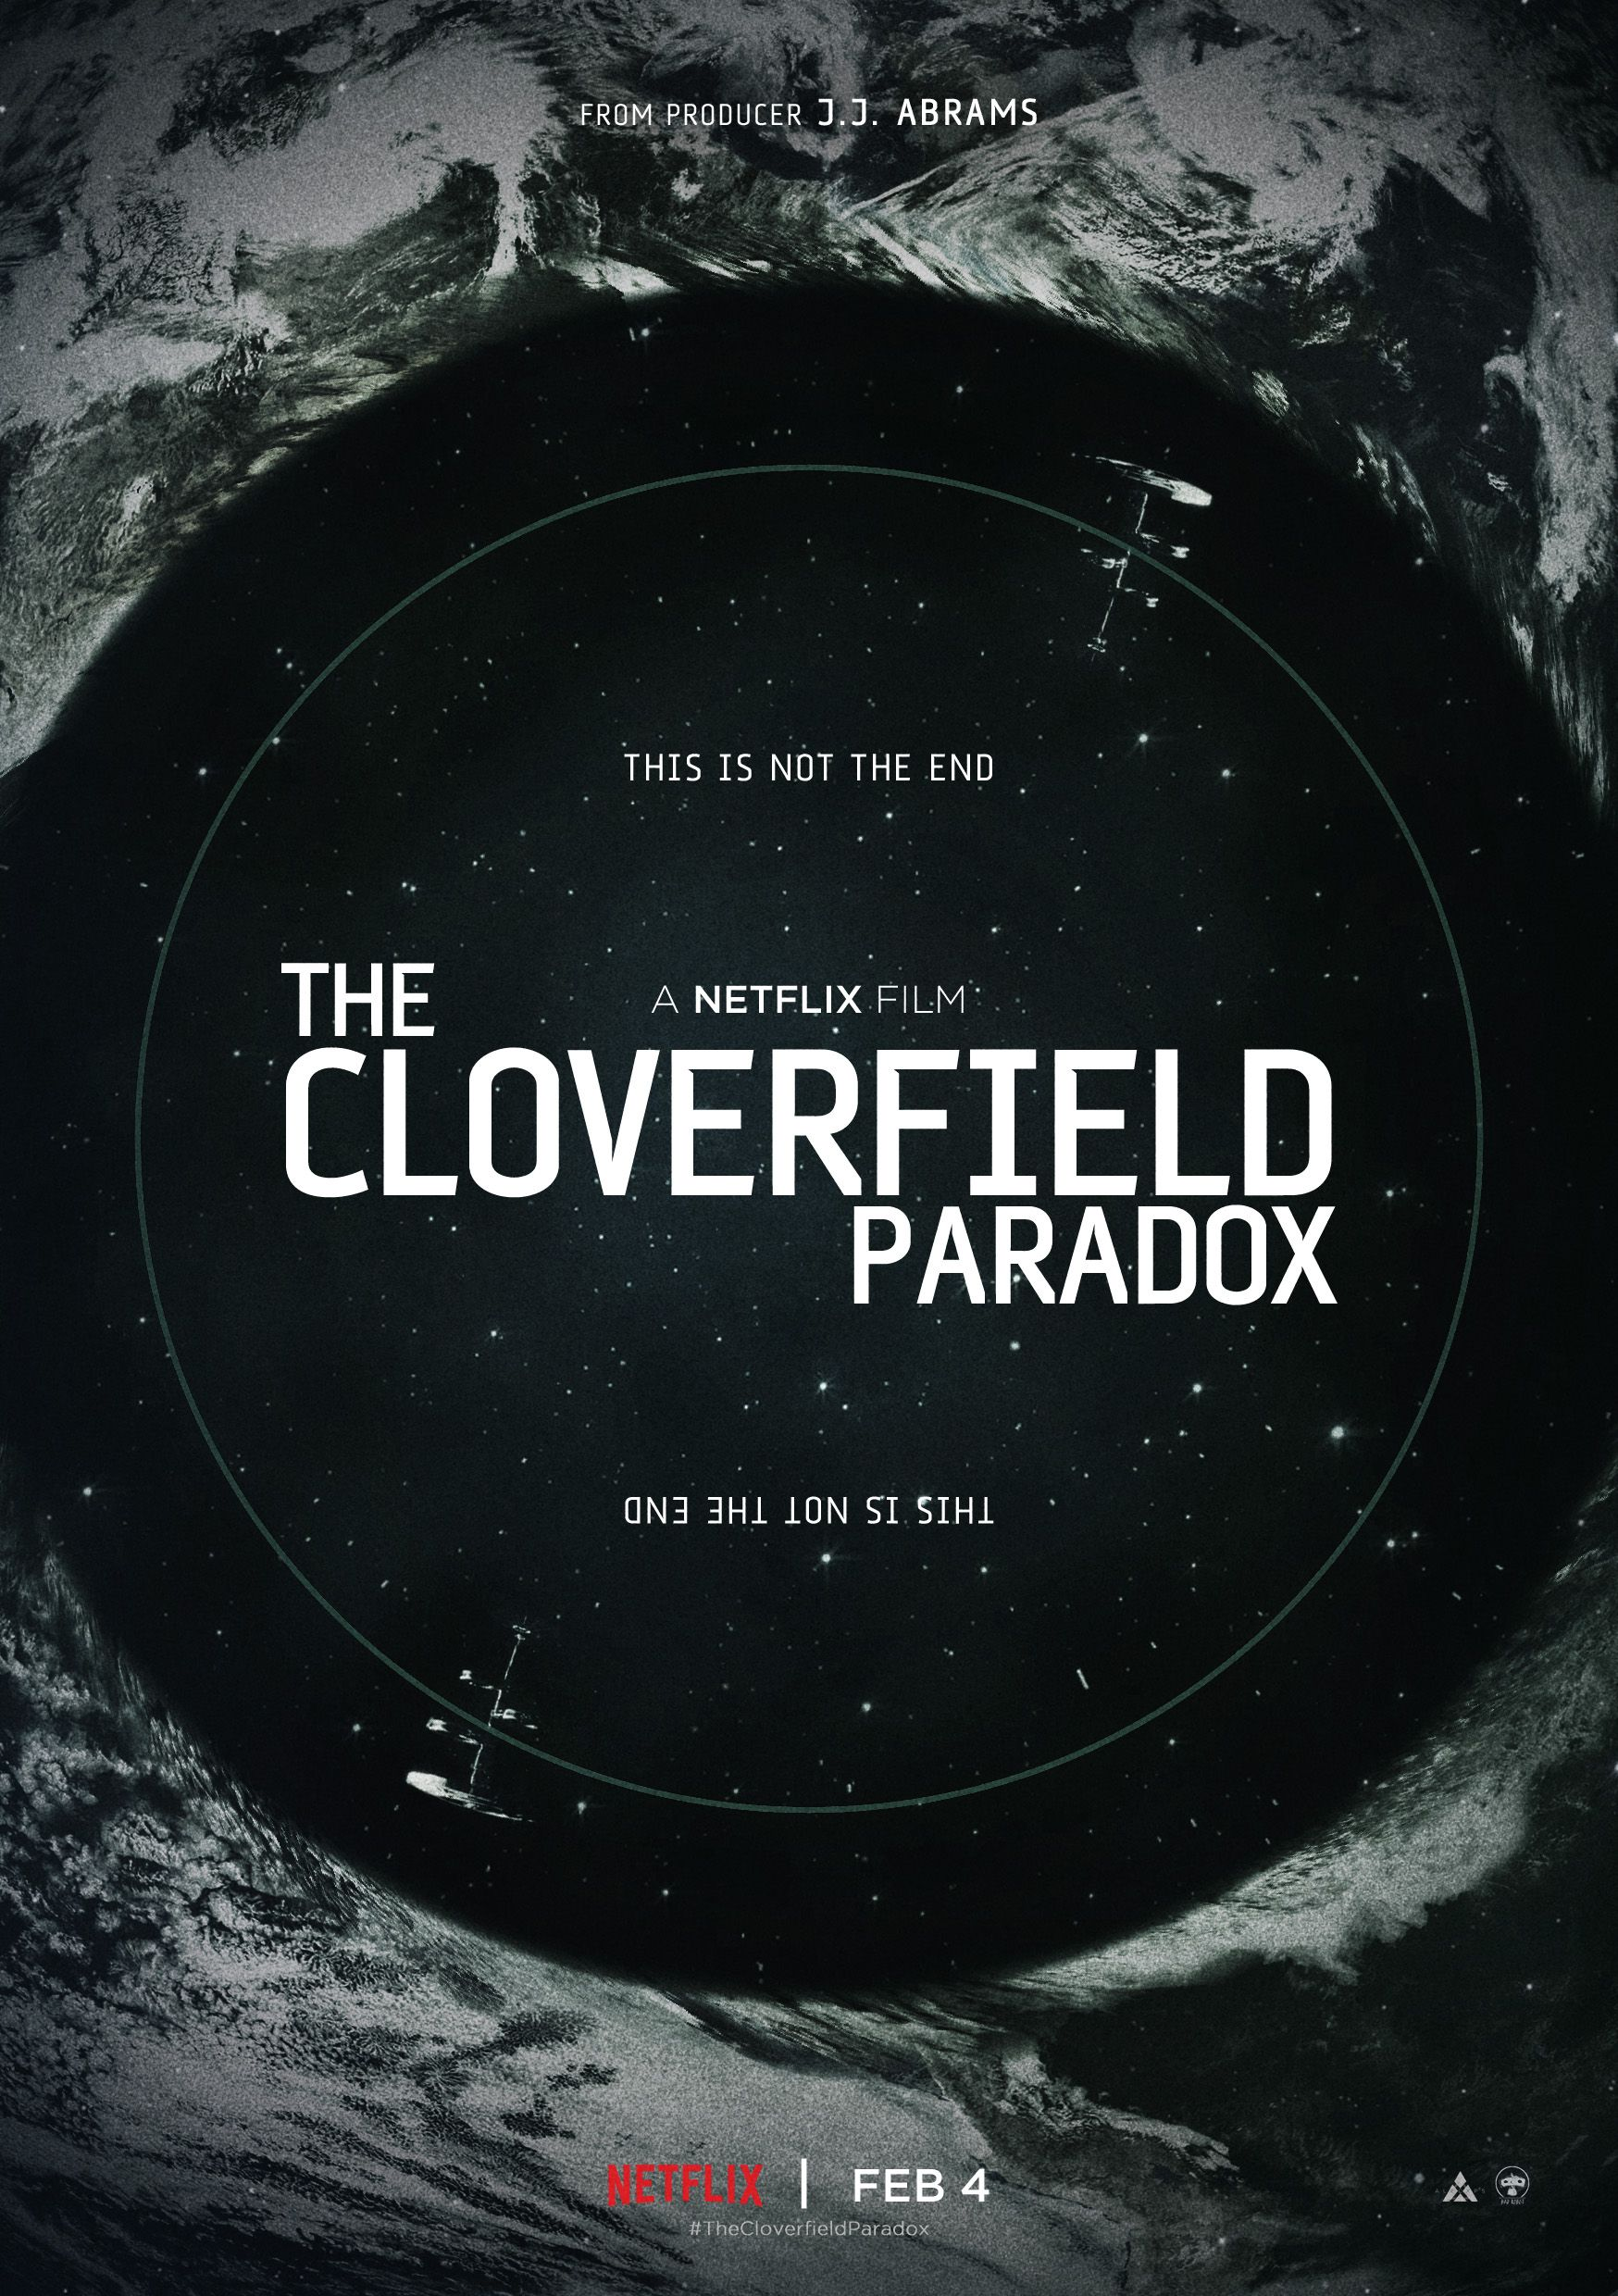 The Cloverfield Paradox - Poster by Alecxps | Film in 2019 | Movie